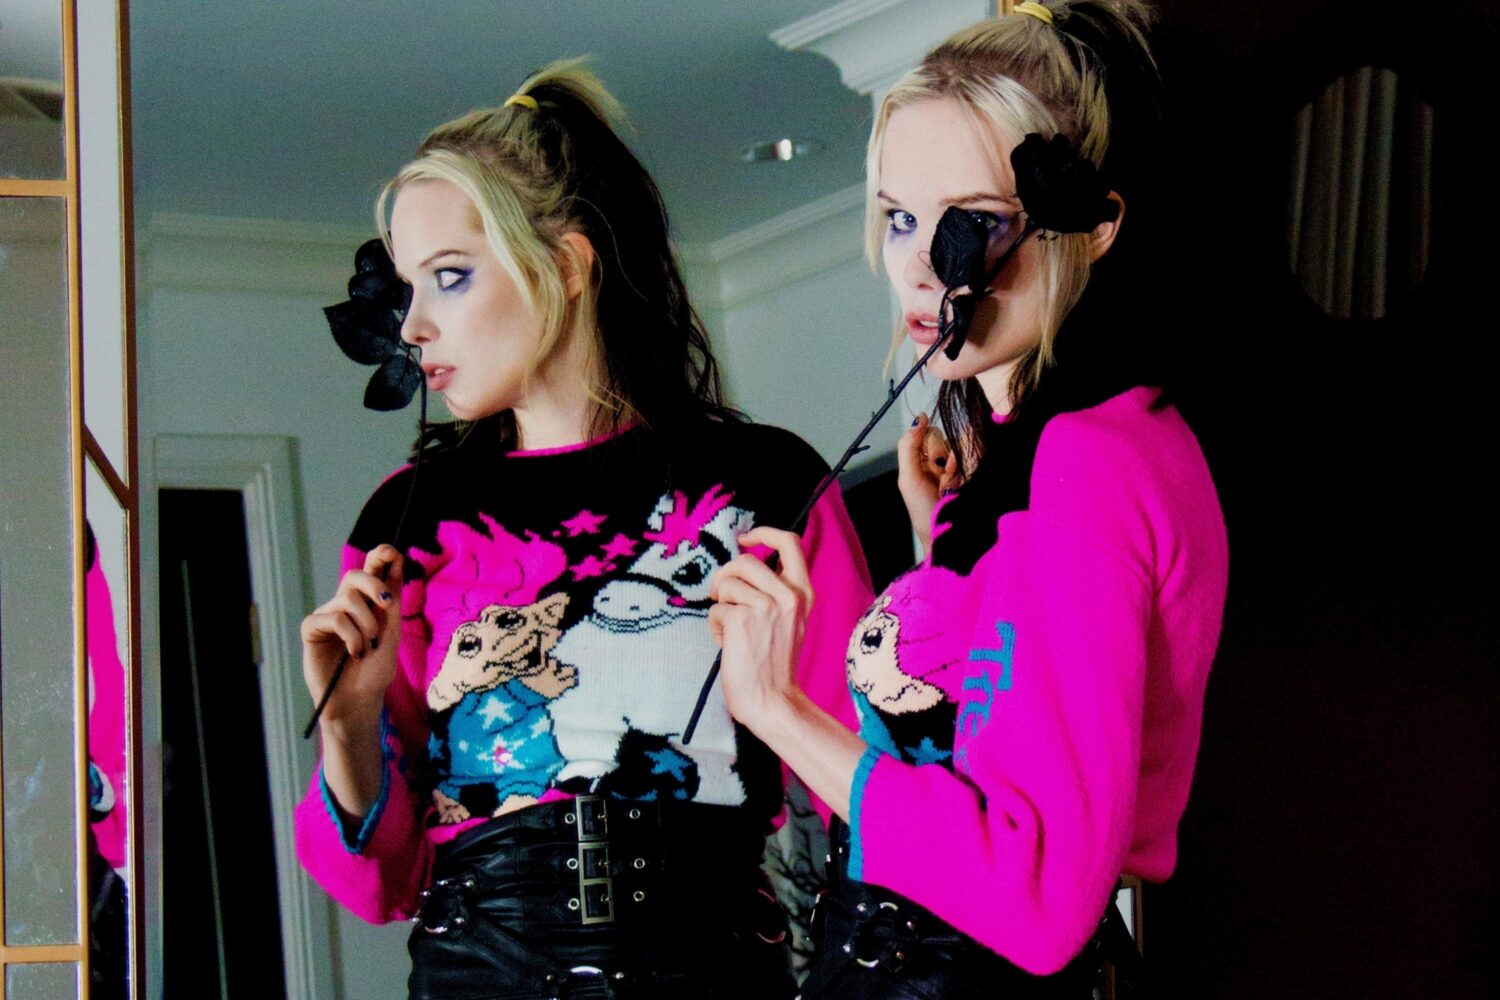 Alice Glass says that Ethan Kath's defamation suit has now been dismissed